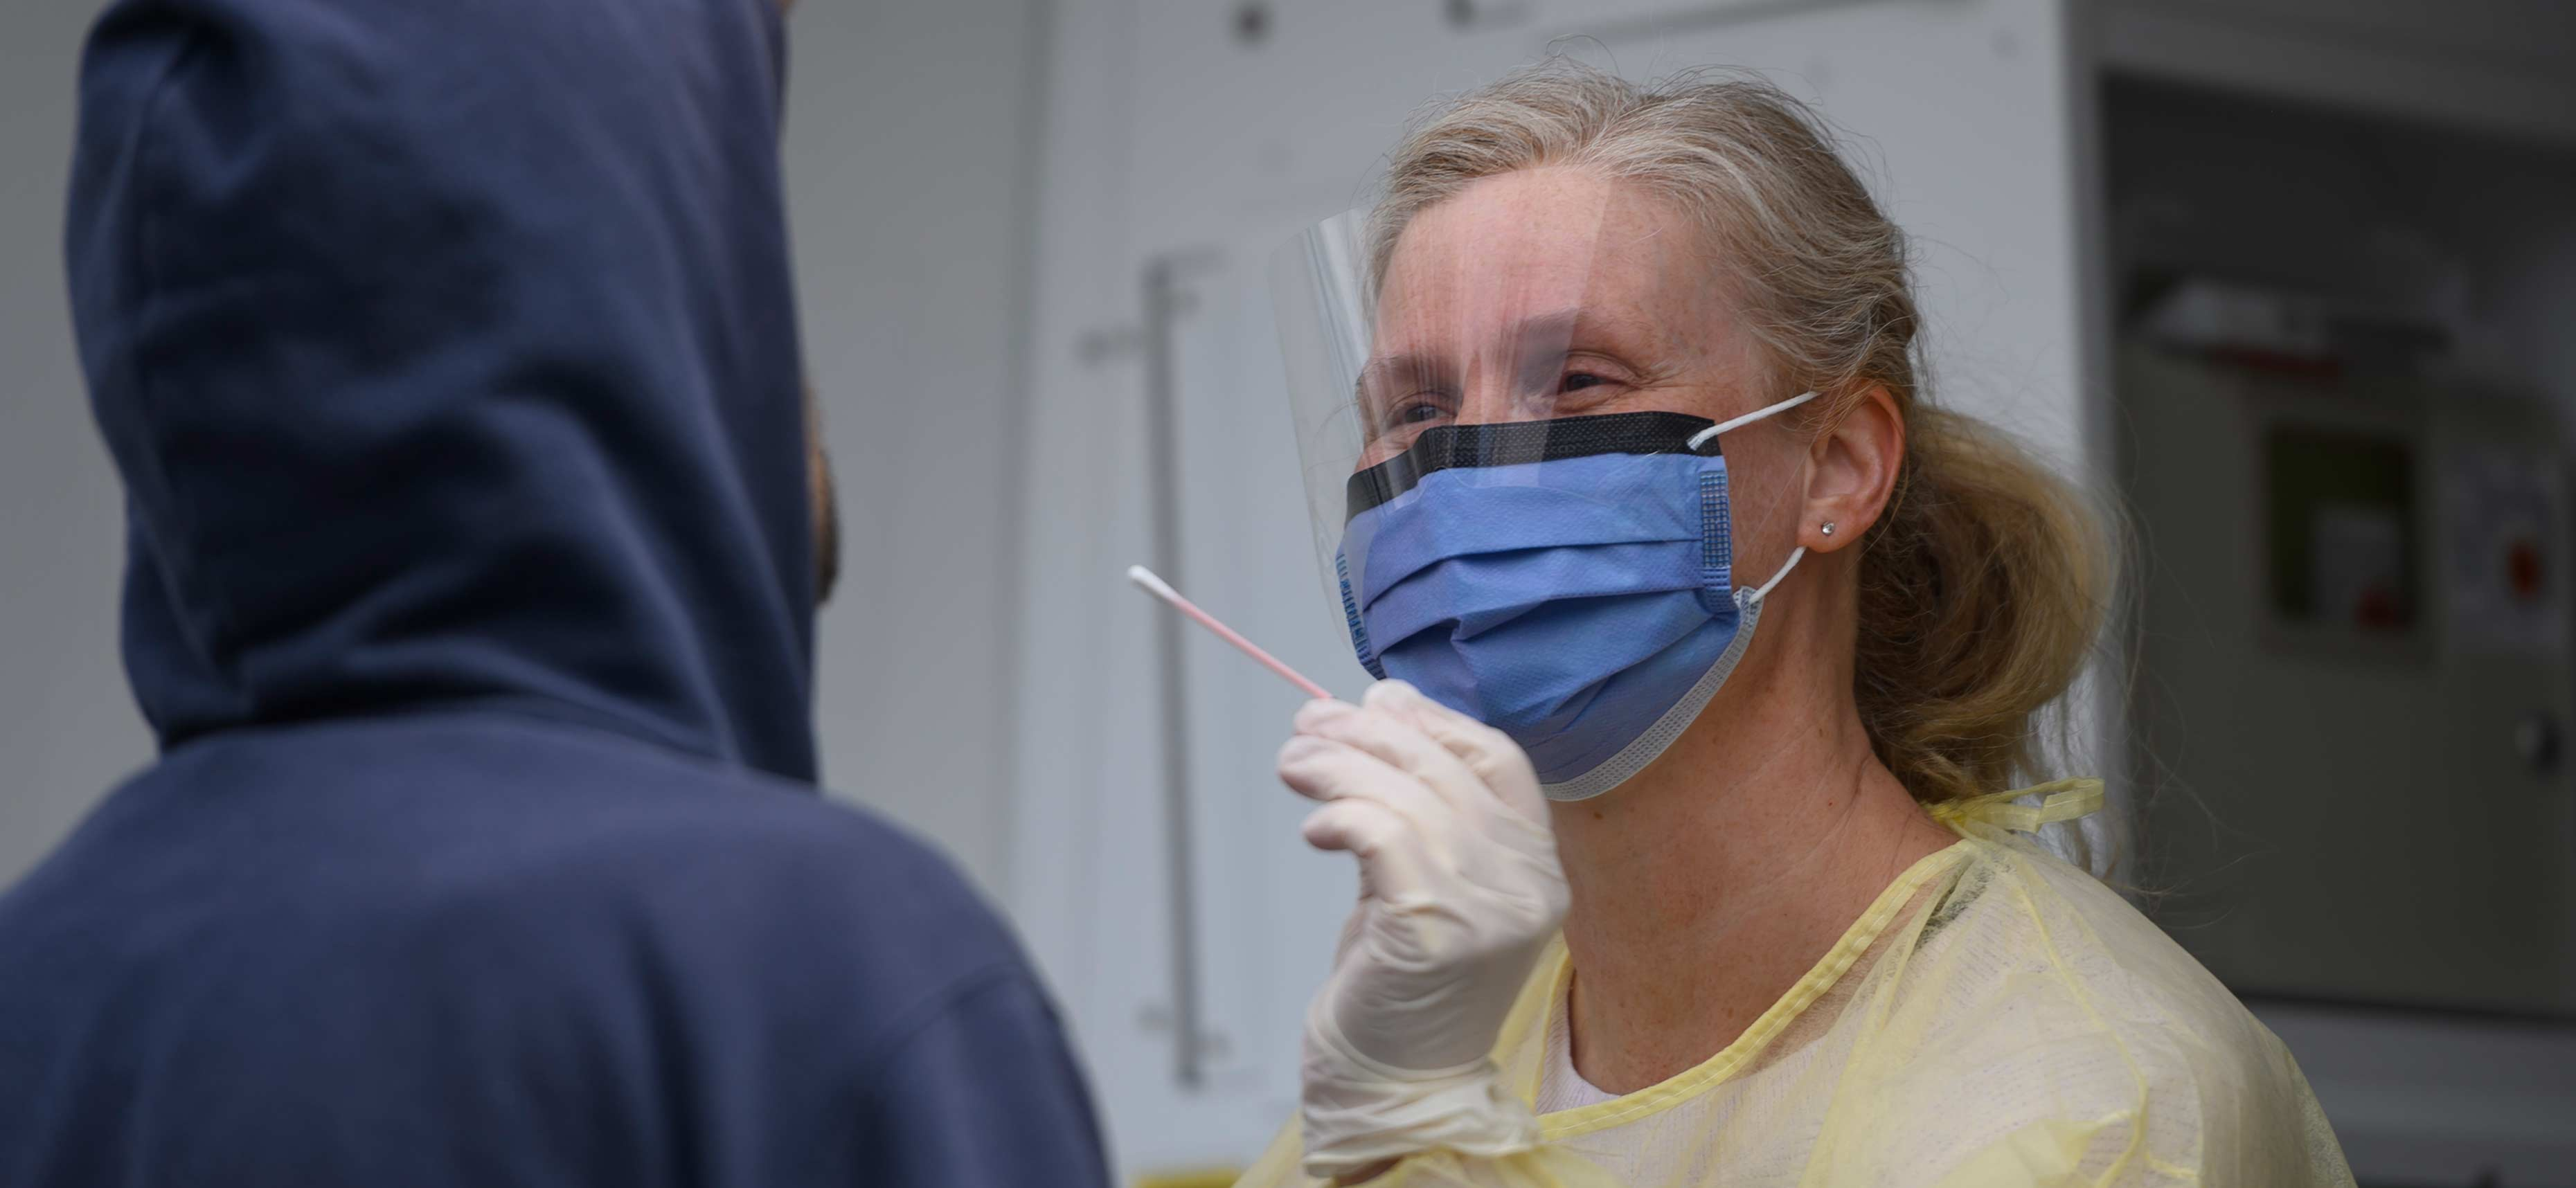 A nurse in personal protective gear administering a test.